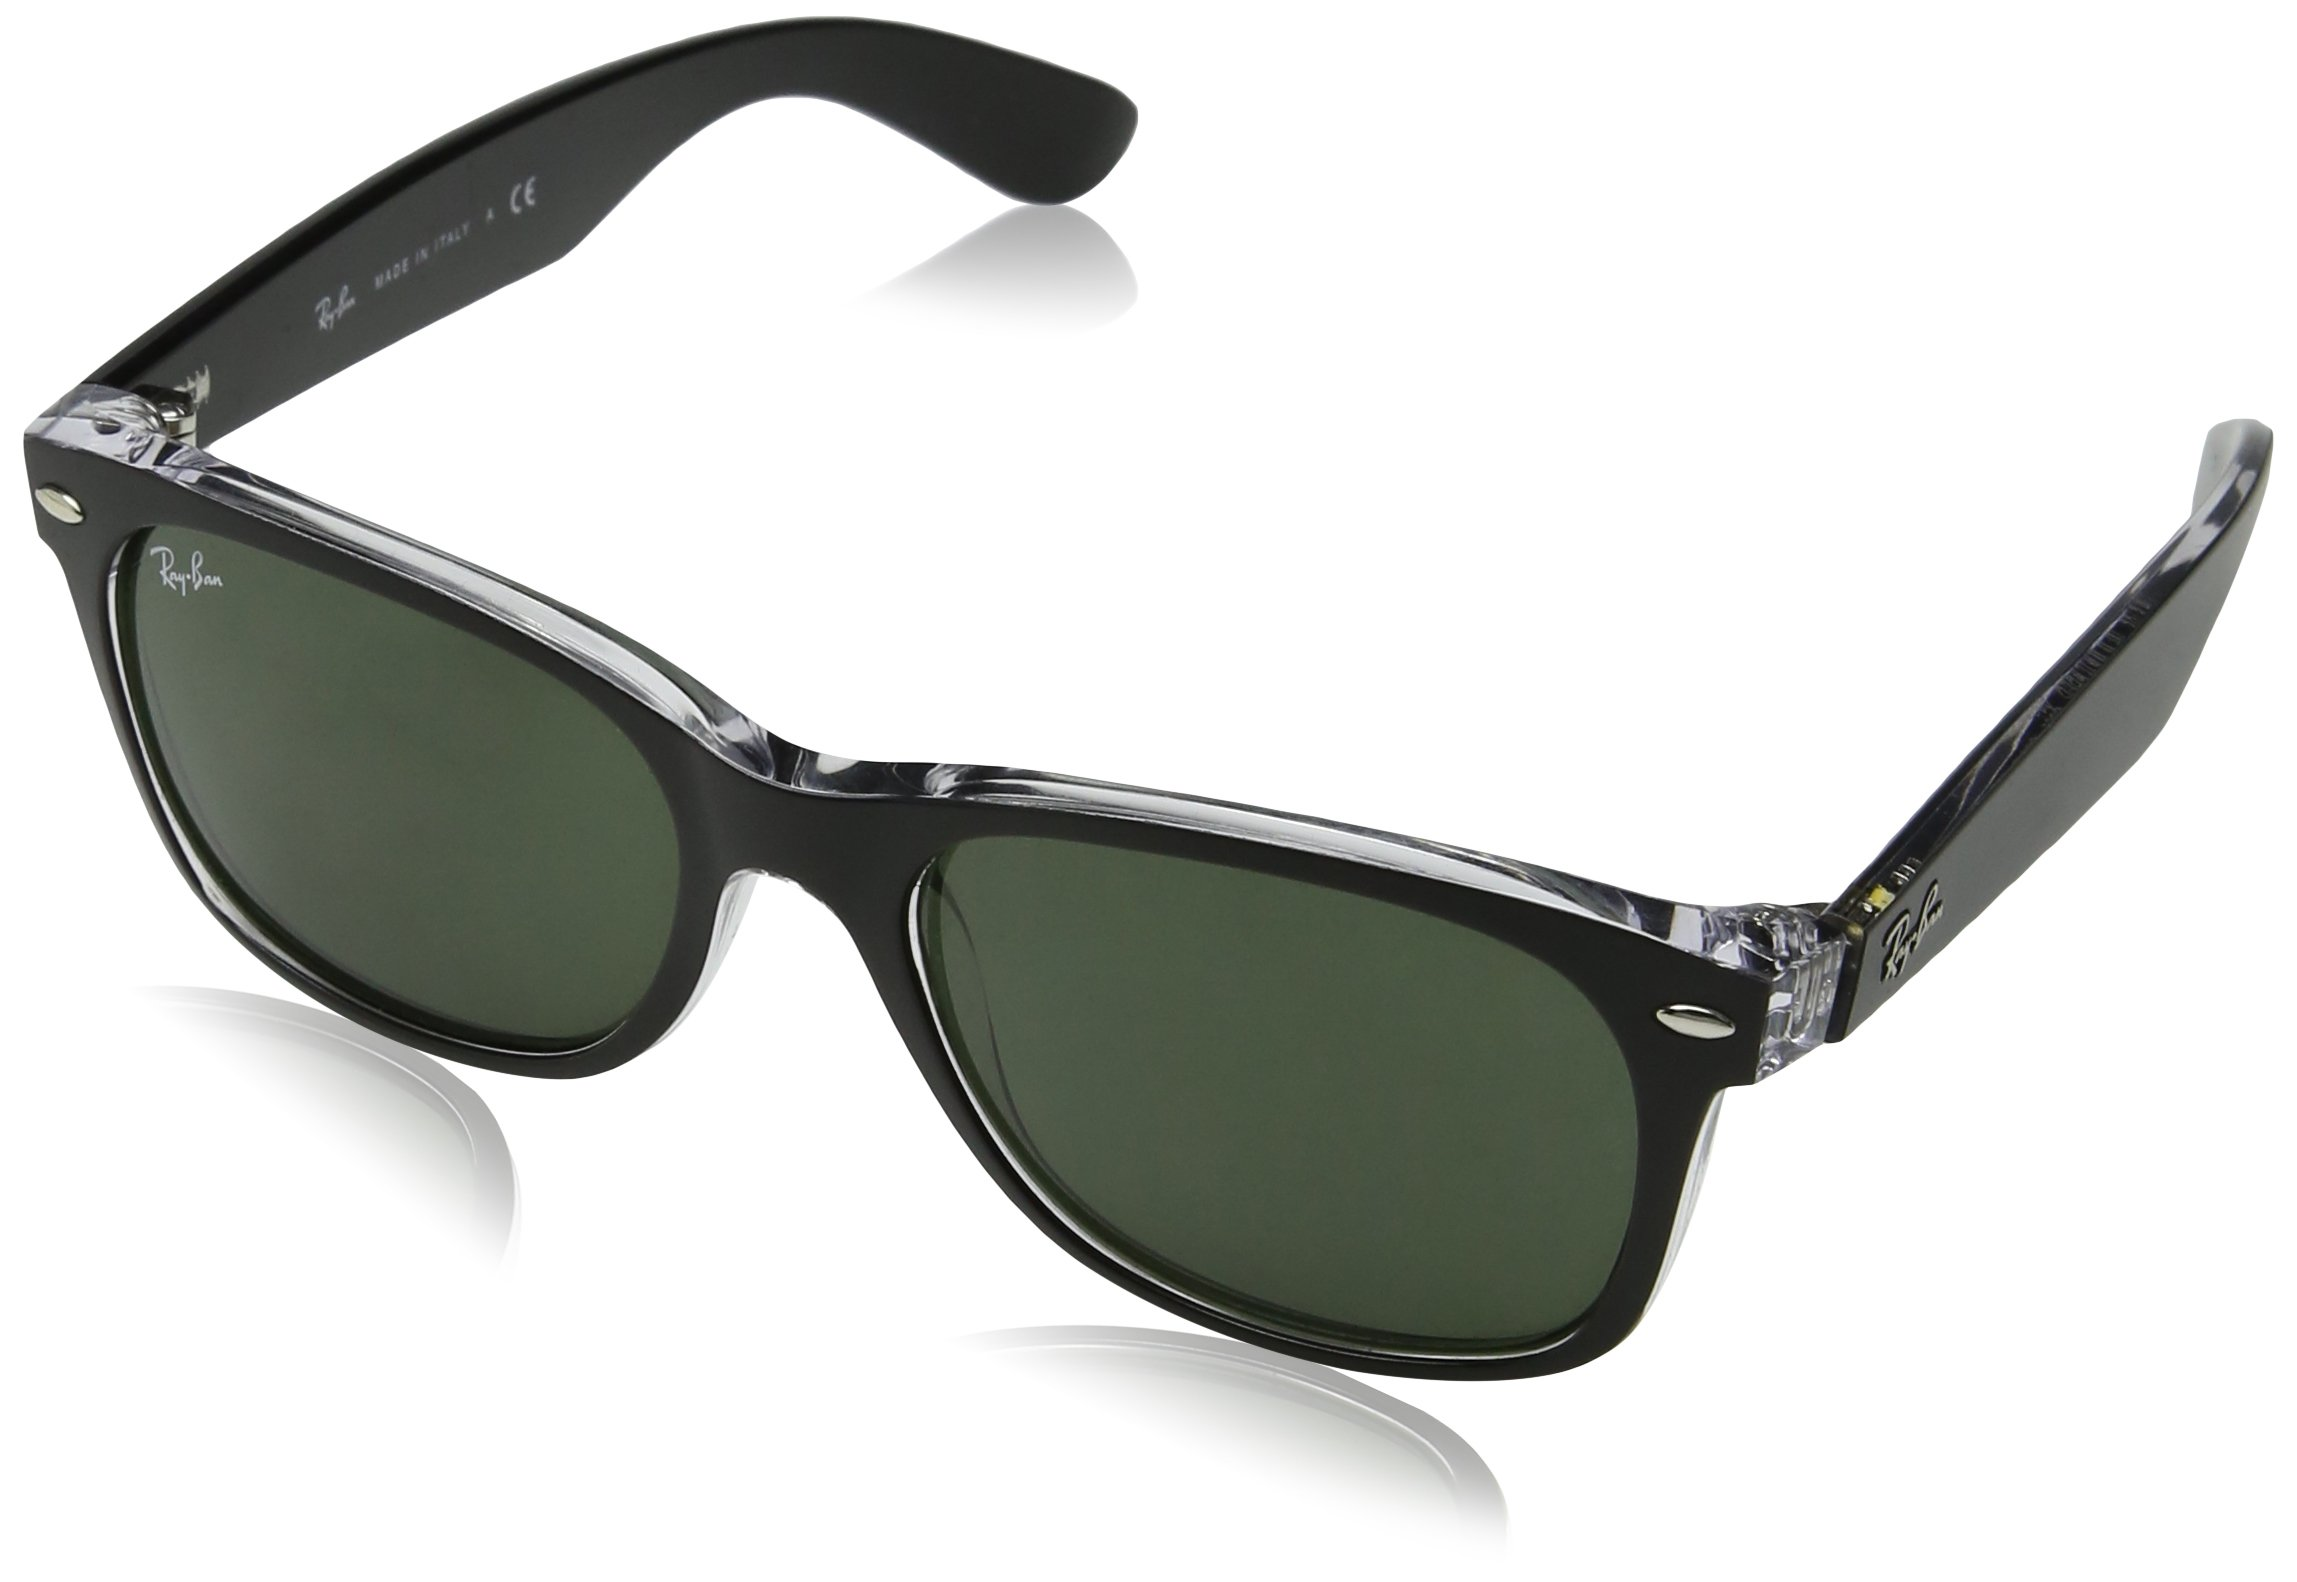 RAY-BAN RB2132 New Wayfarer Sunglasses, Black On Transparent/Green, 52 mm by RAY-BAN